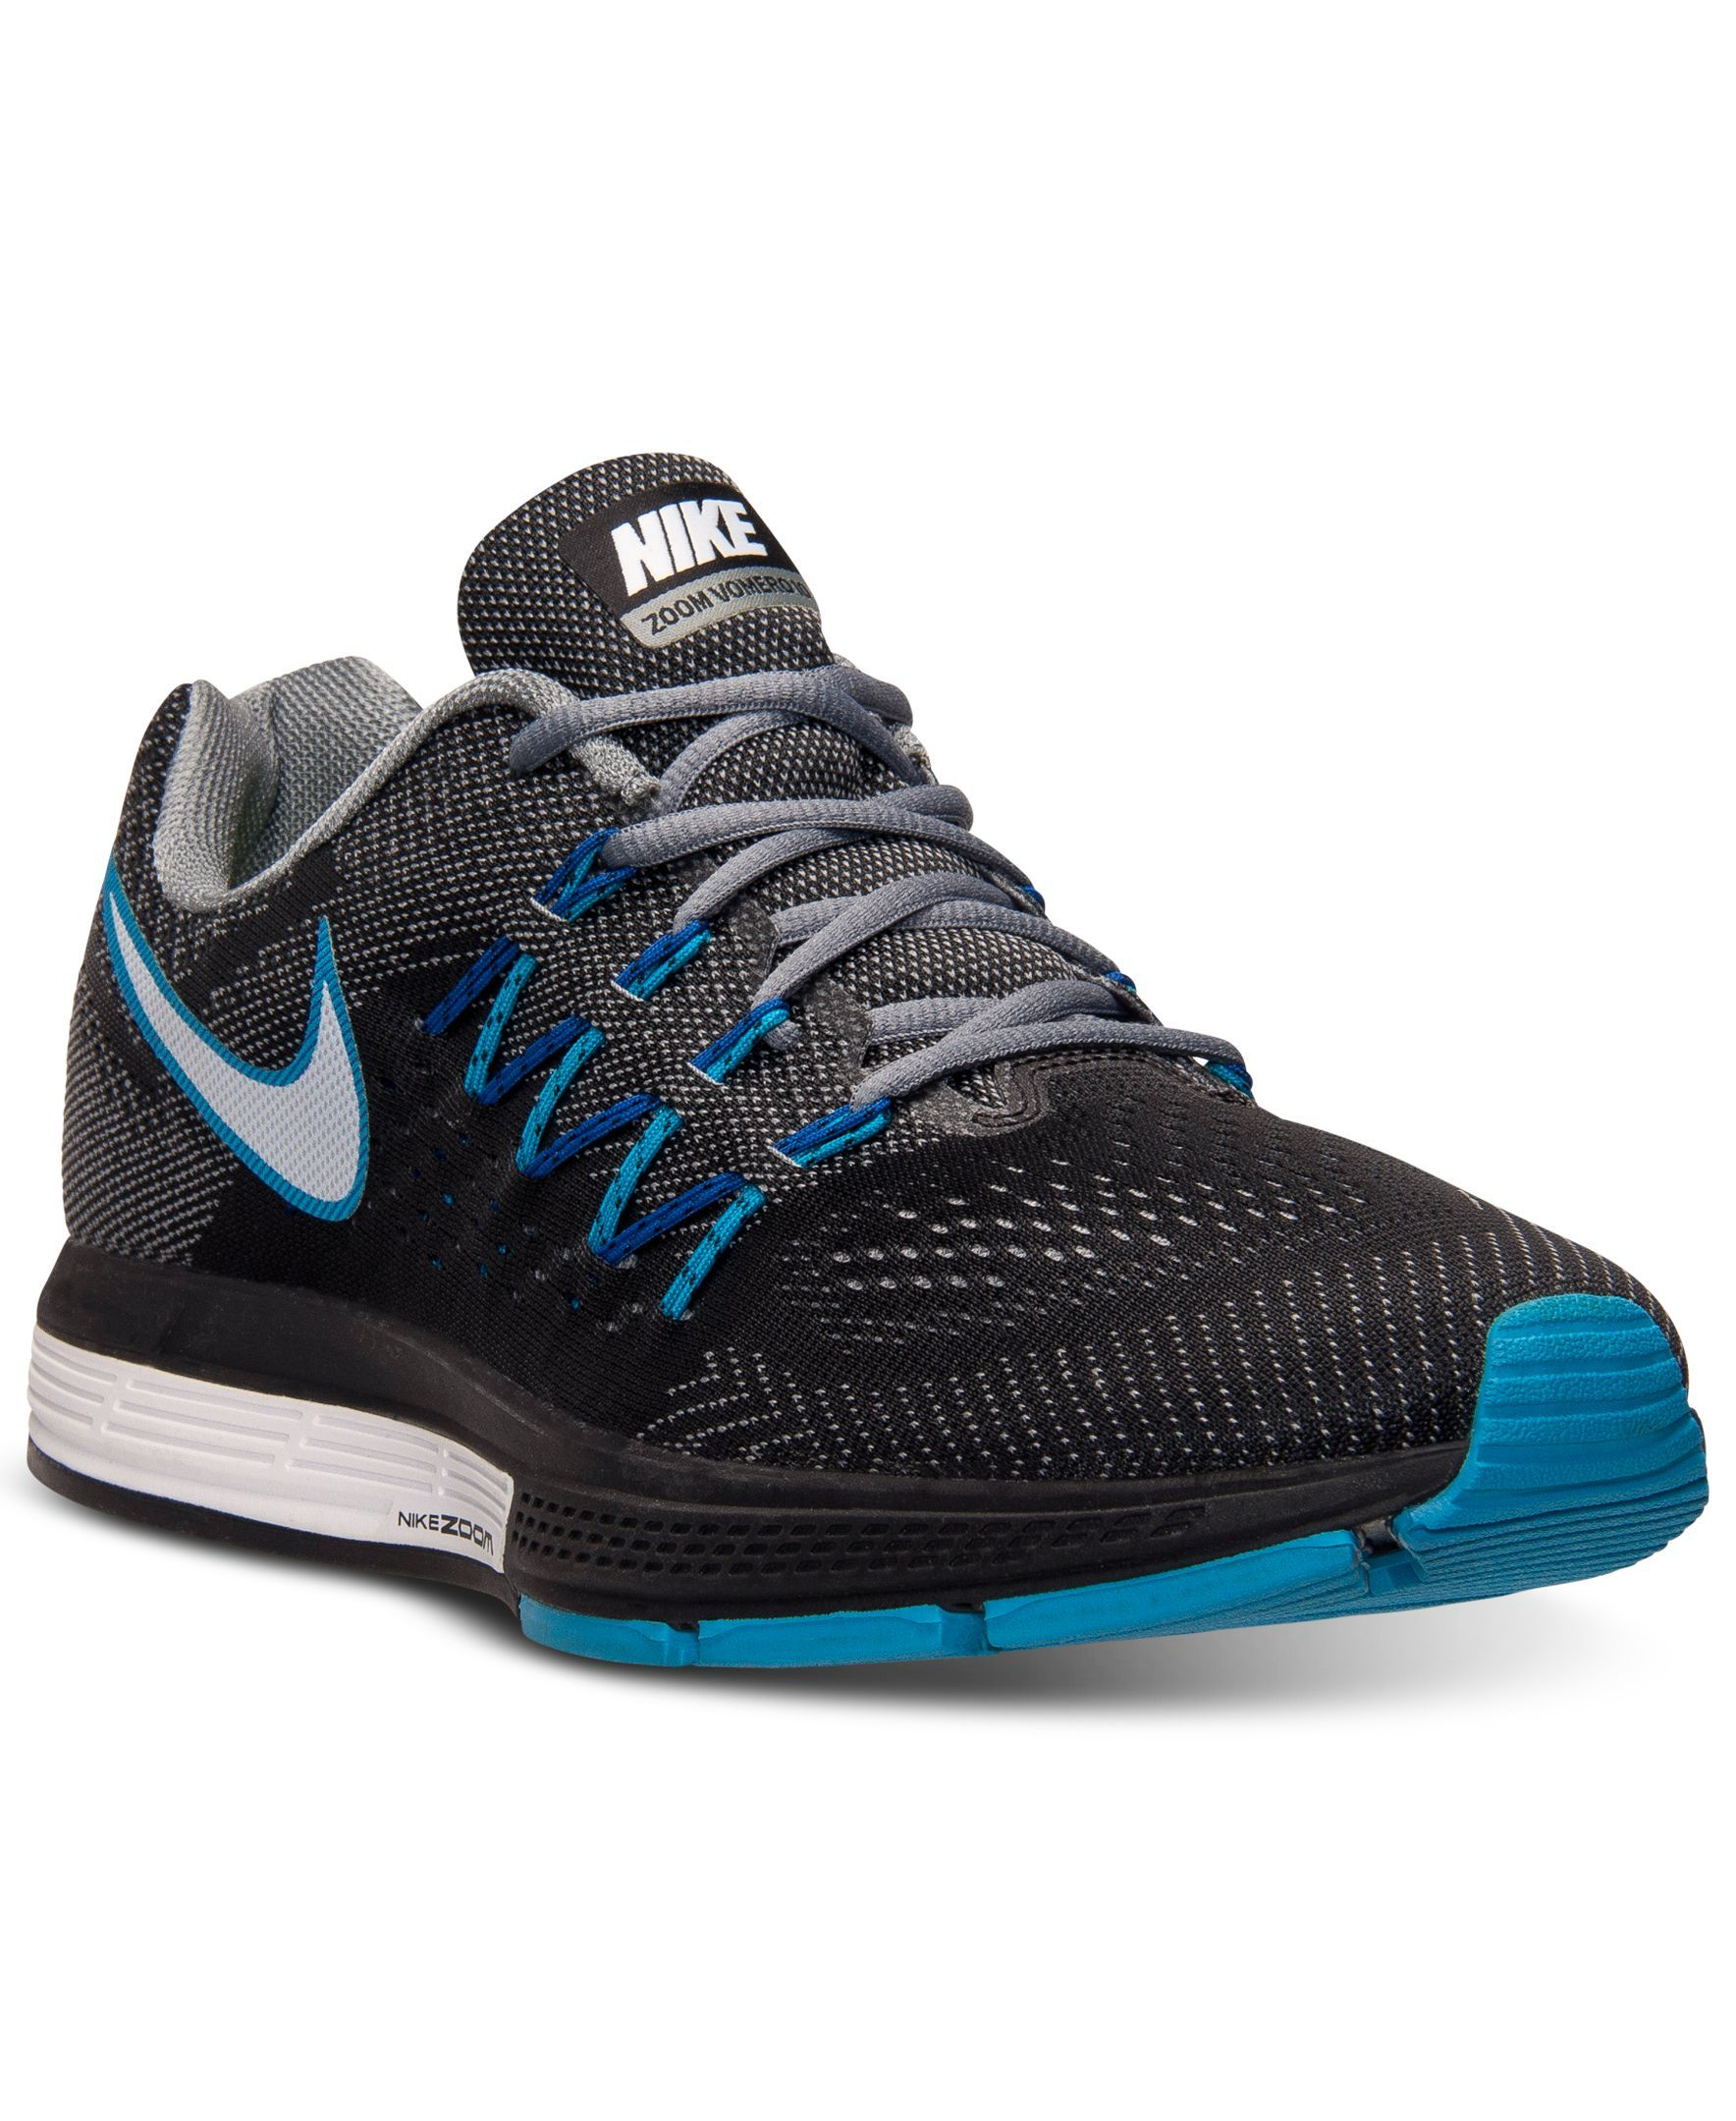 Memorizar Oh Sin valor  Nike Men's Air Zoom Vomero 10 Running Sneakers from Finish Line ...